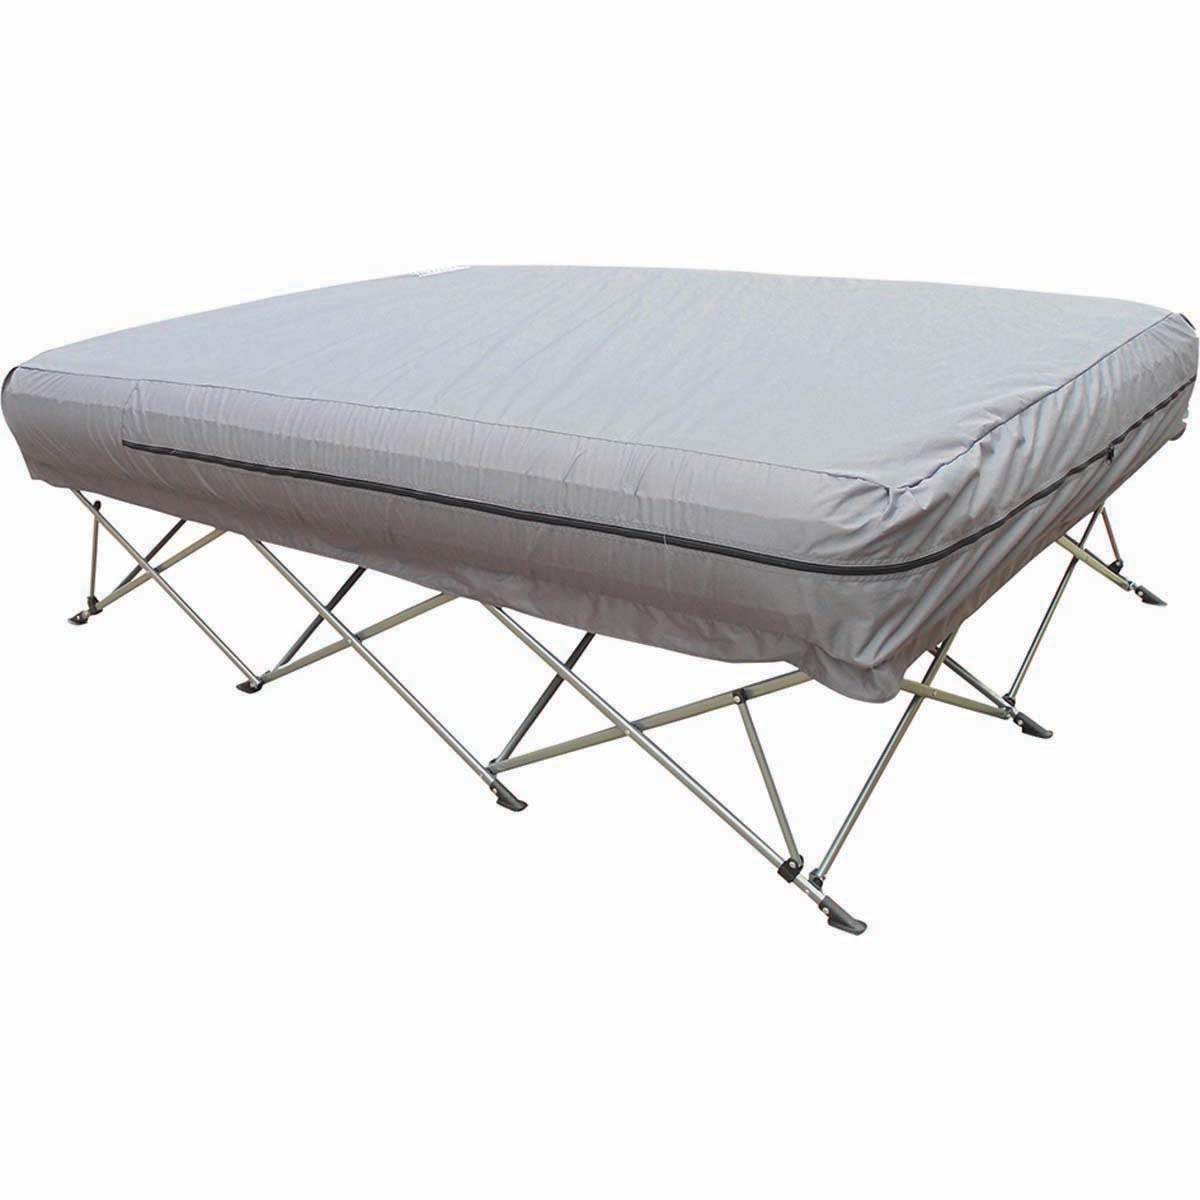 wanderer inflatable mattress instructions